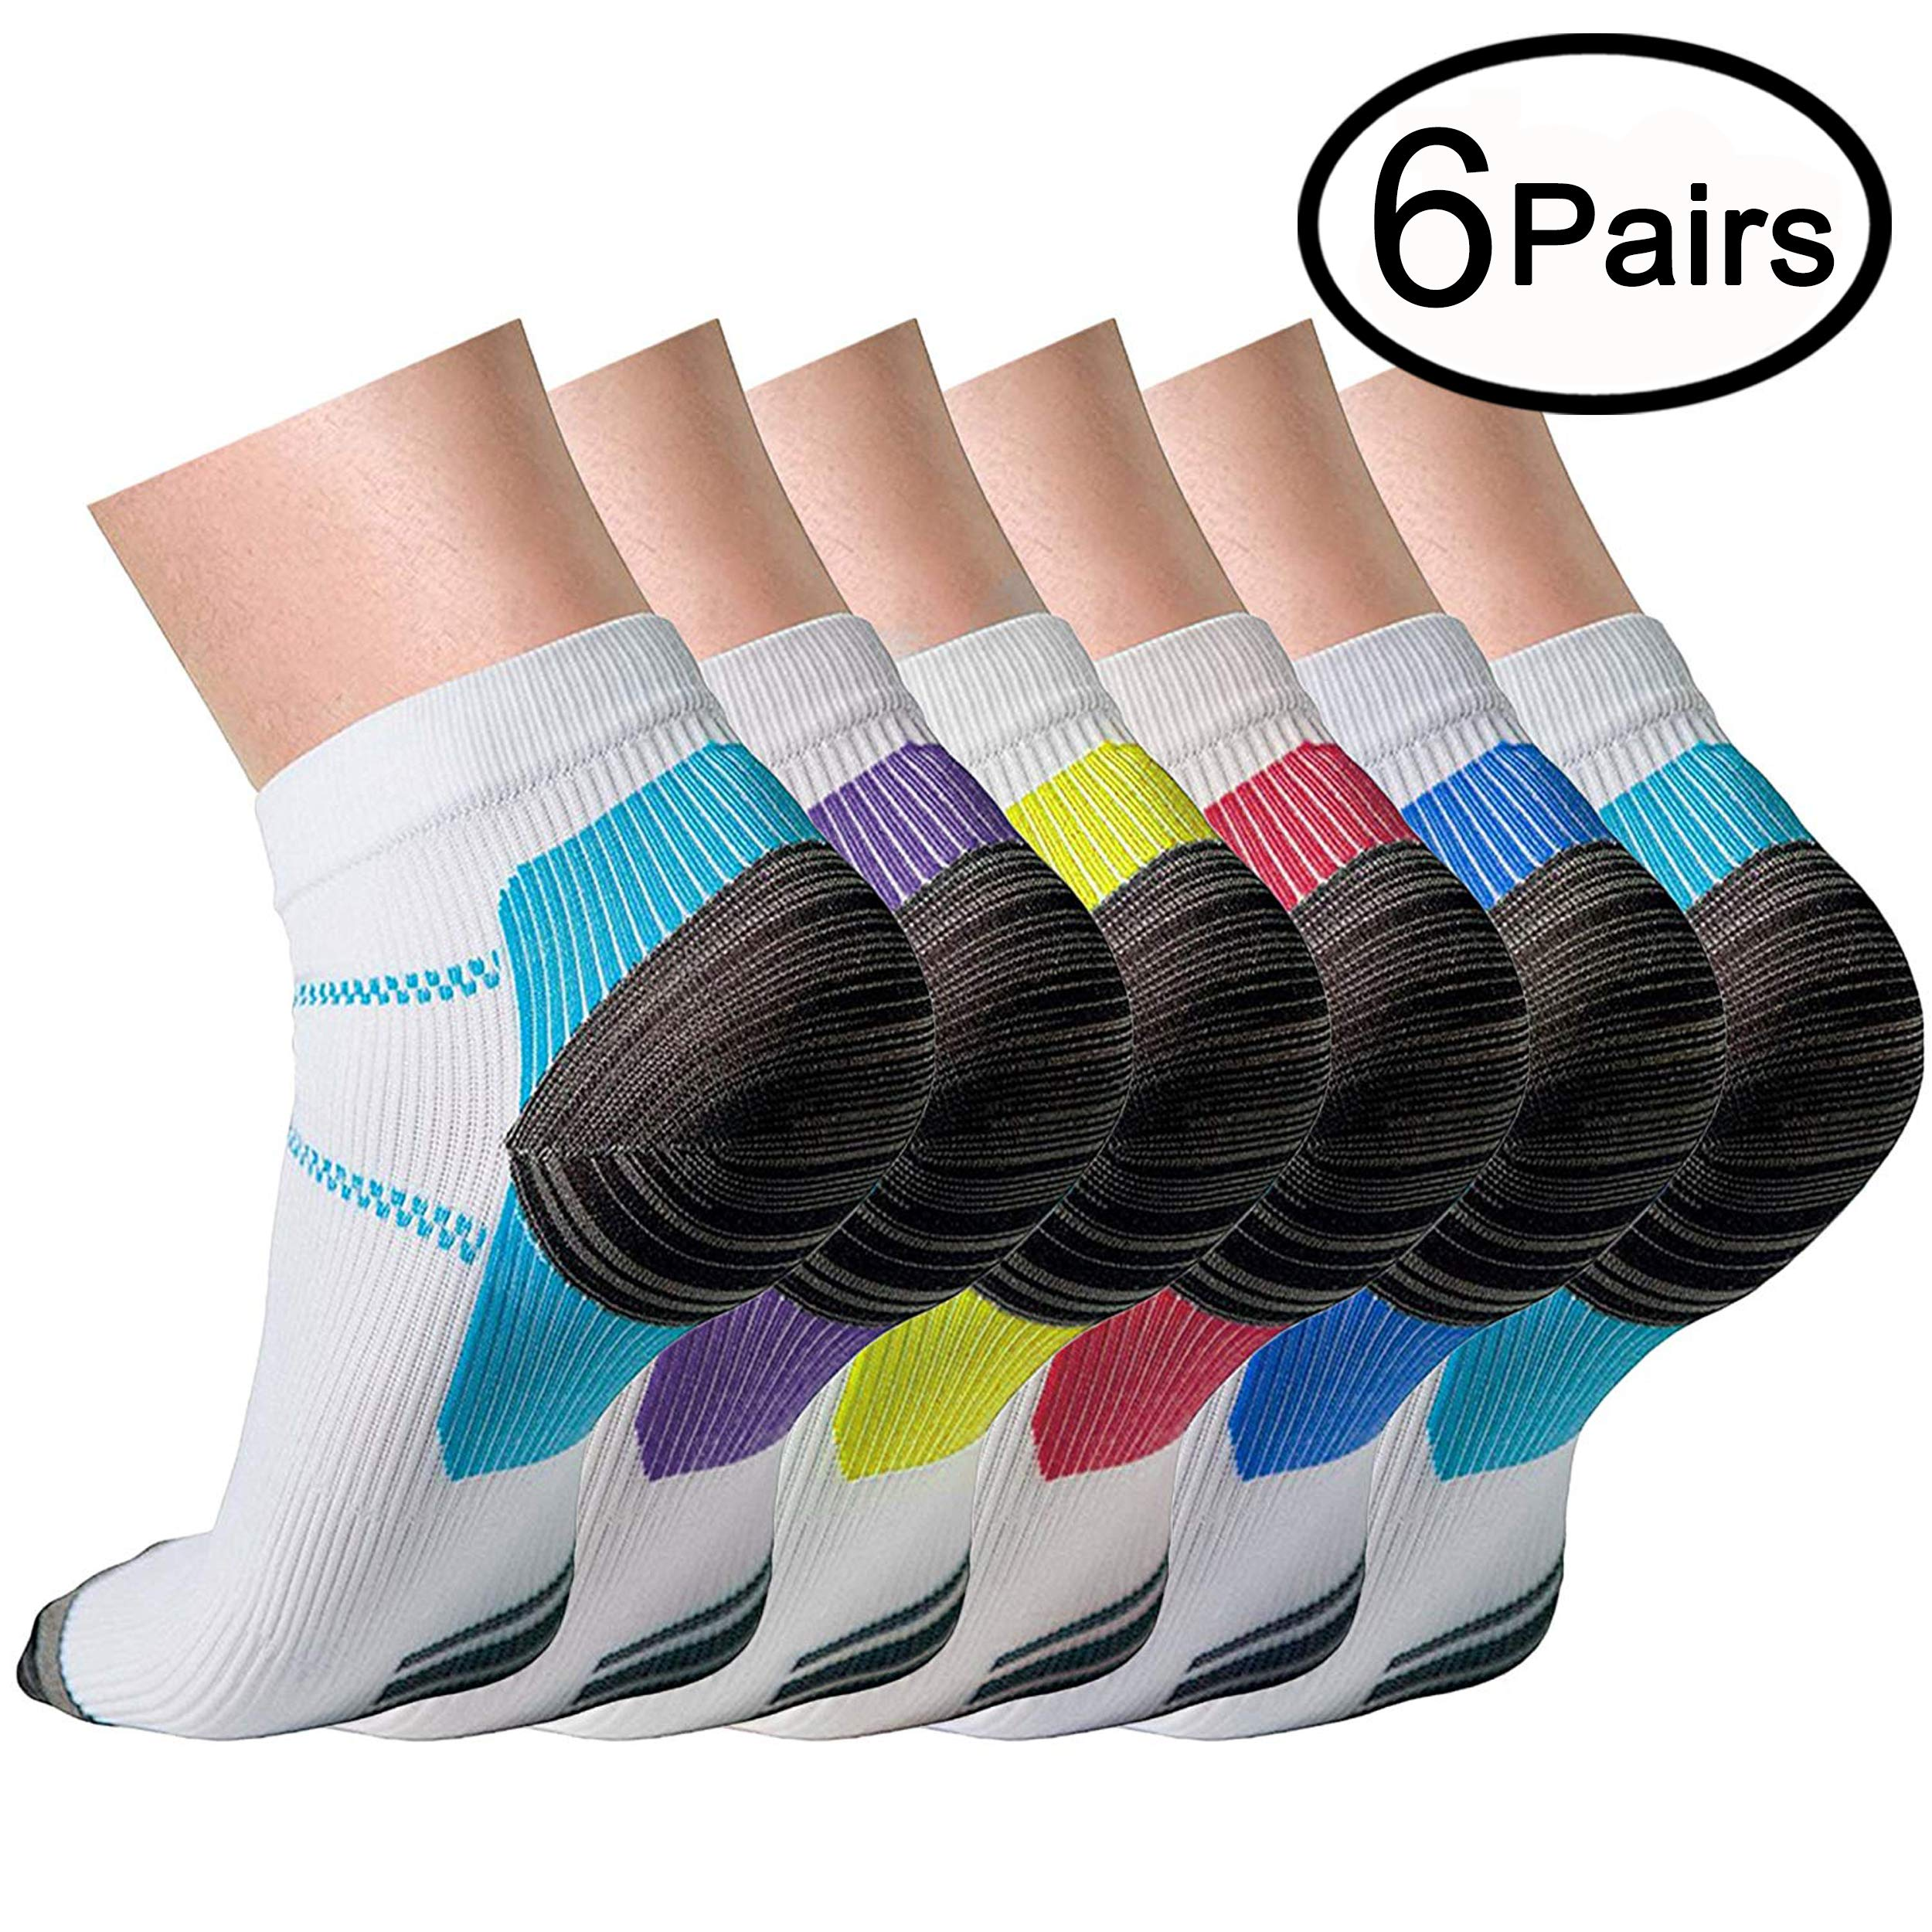 Compression Socks (6 Pairs),15-20 mmhg is BEST Athletic & Medical for Men & Women, Running, Flight, Travel, Nurses - Boost Performance, Blood Circulation & Recovery (Small/Medium, 6 Pairs)